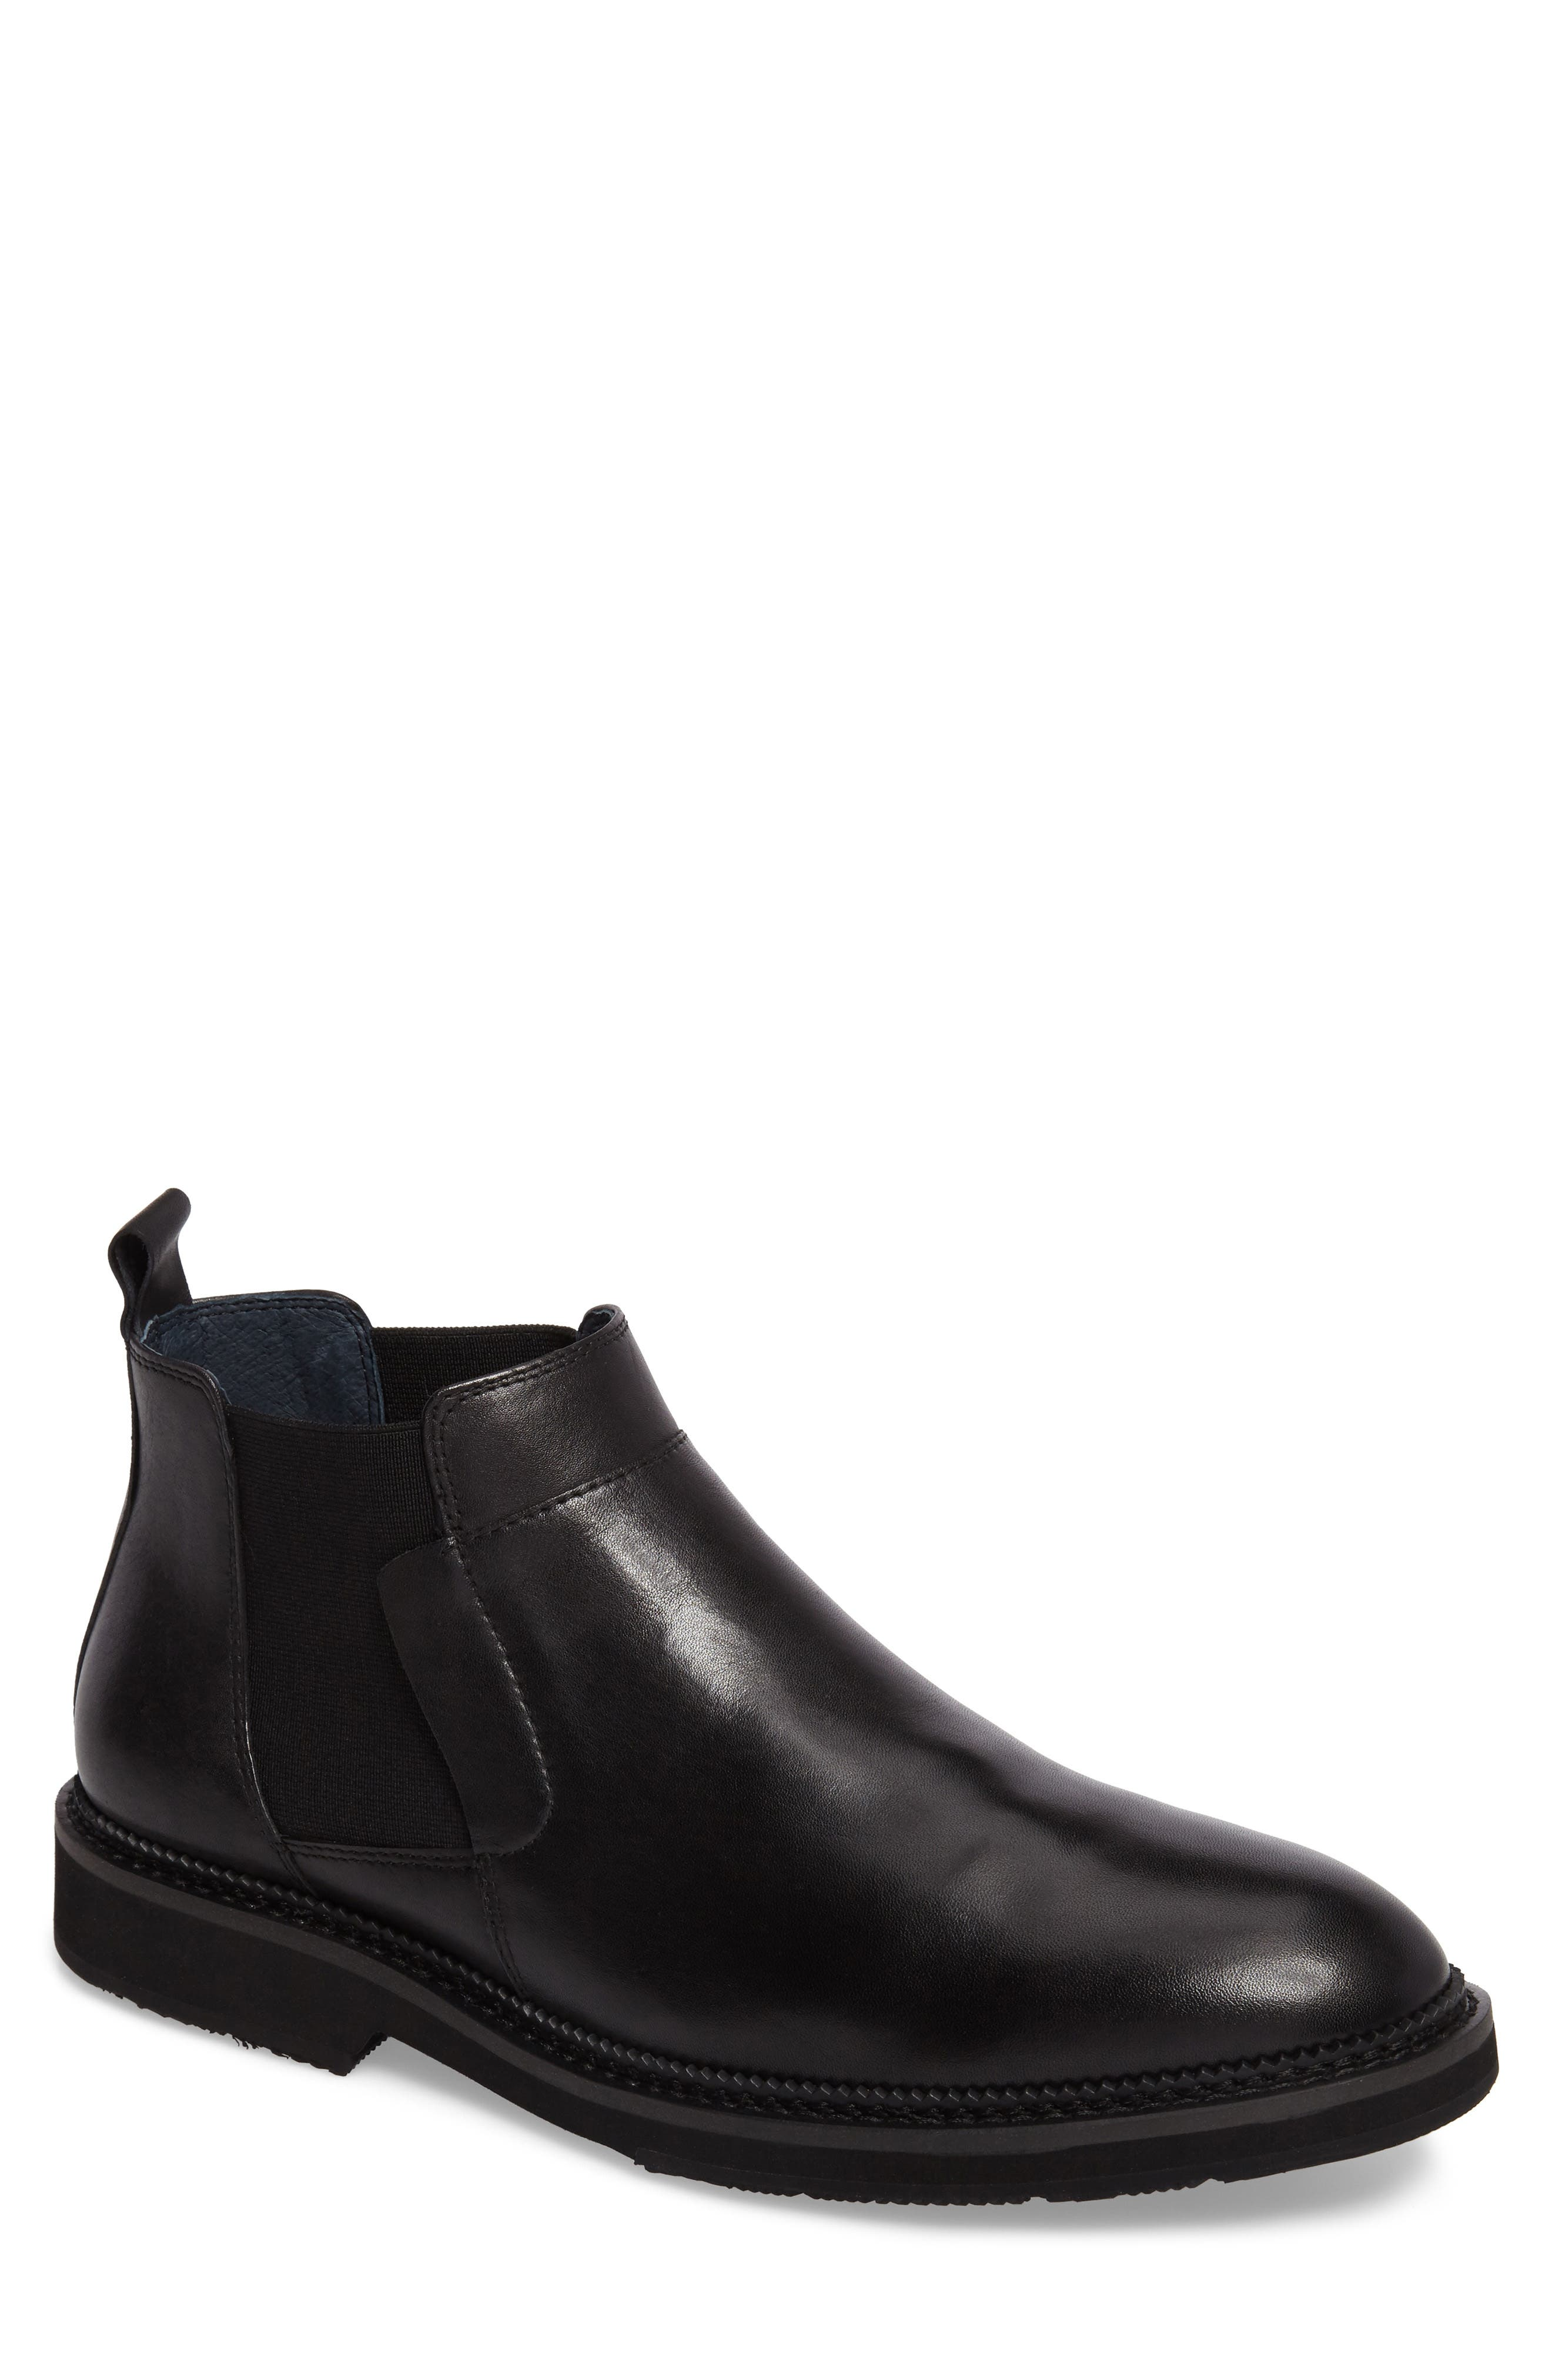 ZANZARA,                             Garrad Chelsea Boot,                             Main thumbnail 1, color,                             001